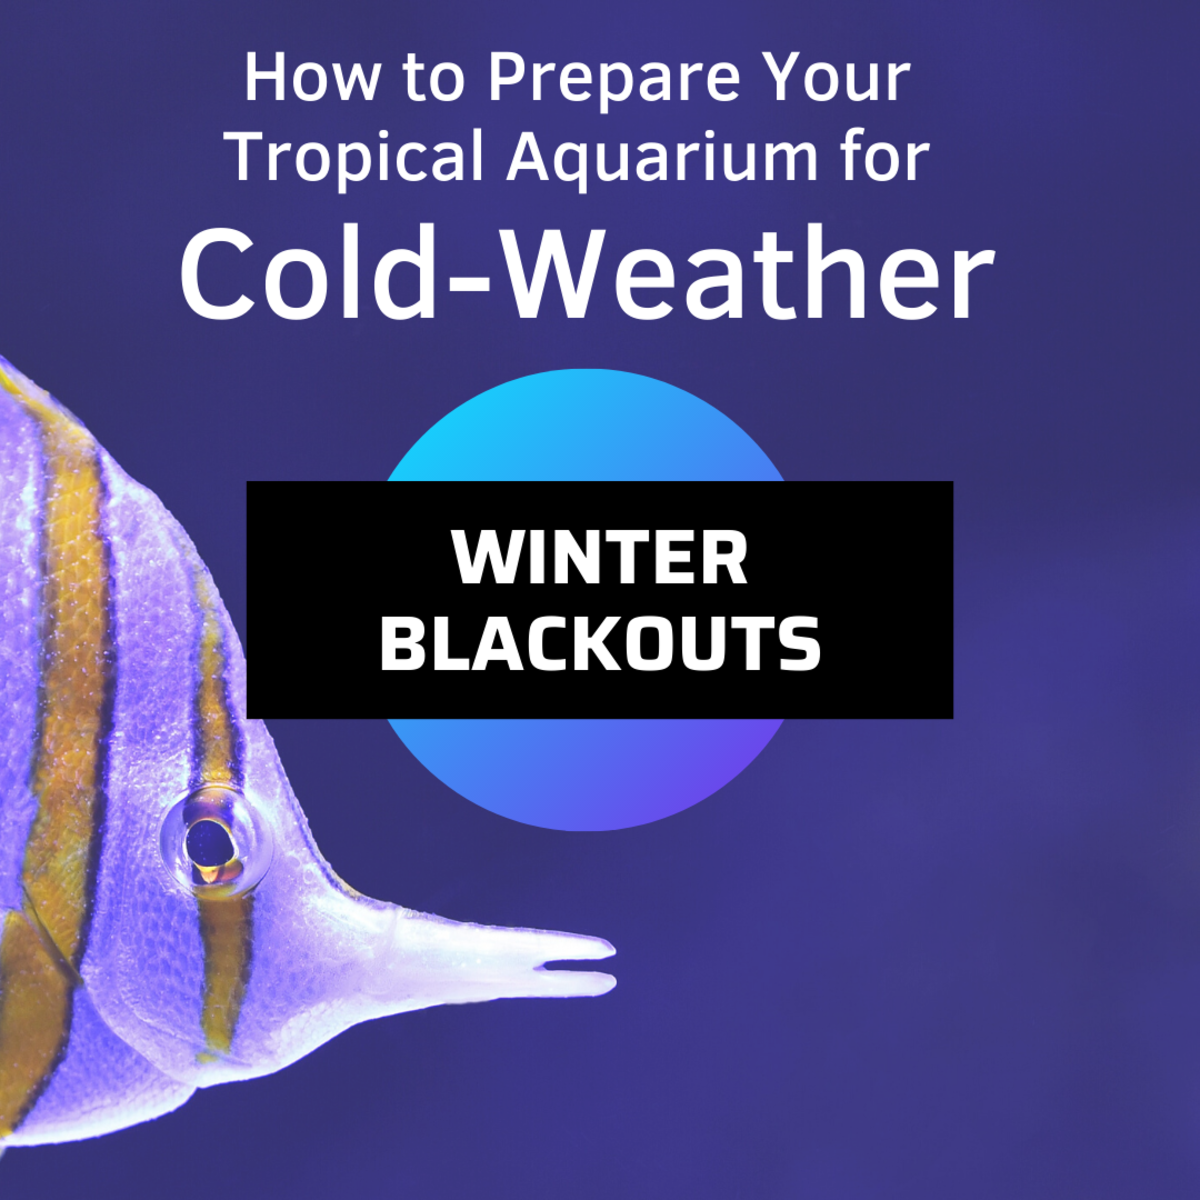 How to Prepare a Tropical Aquarium for Winter Blackouts